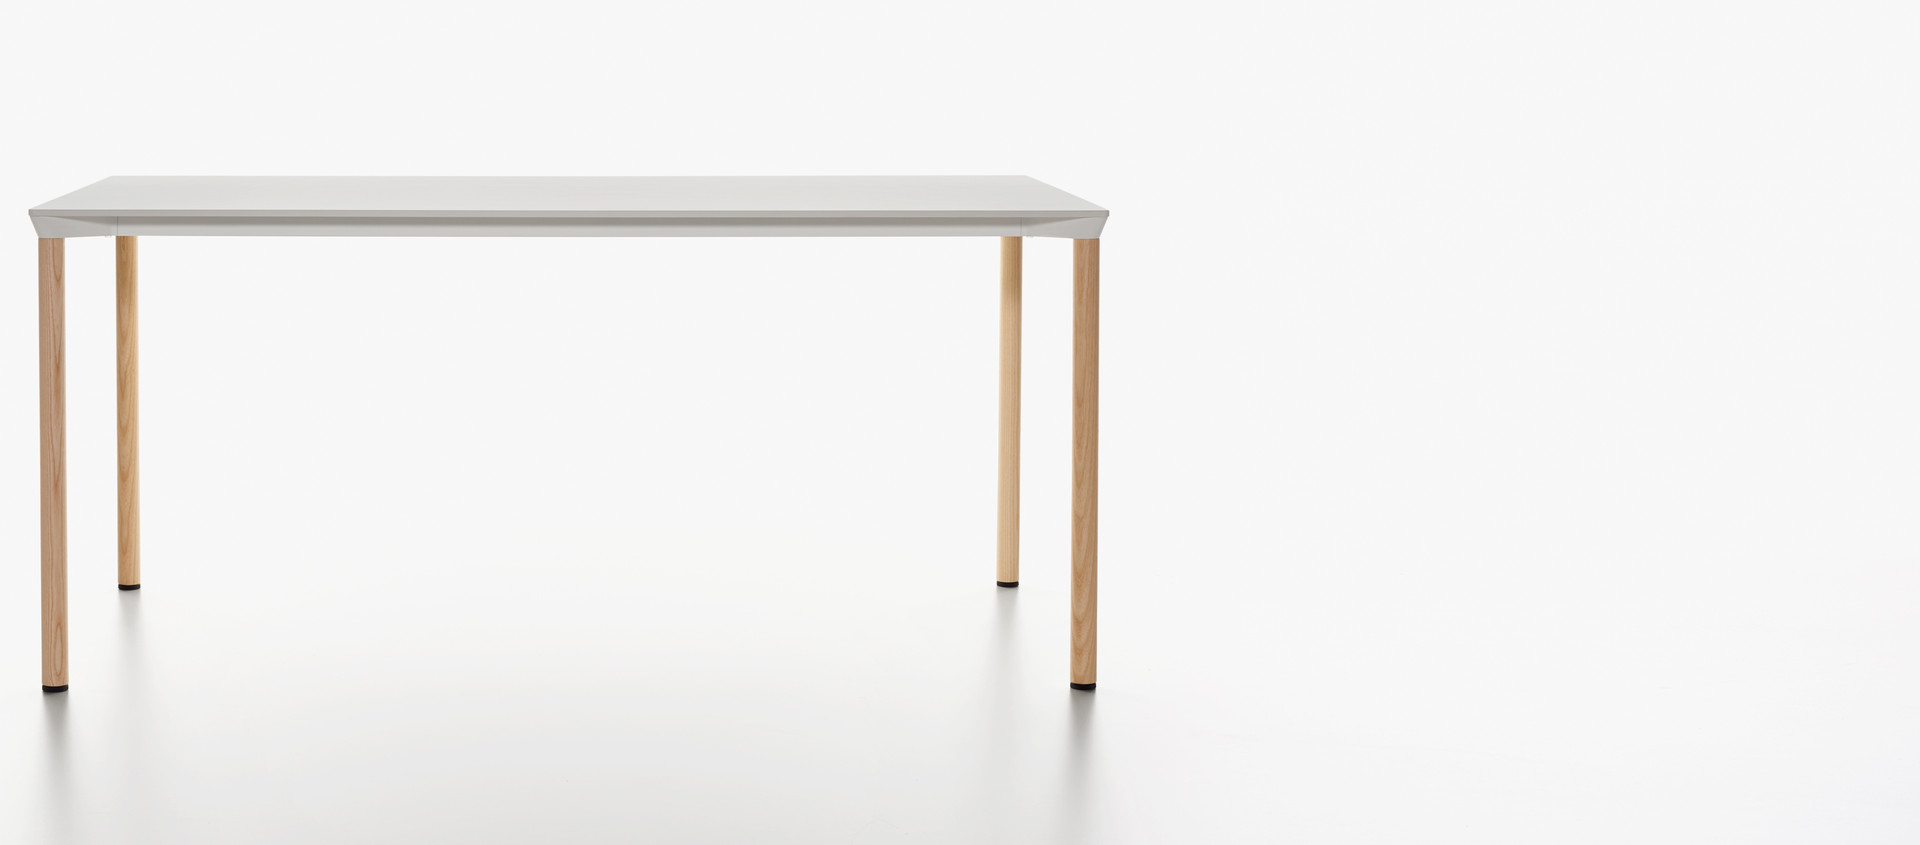 HERO - Plank - MONZA table rectangular